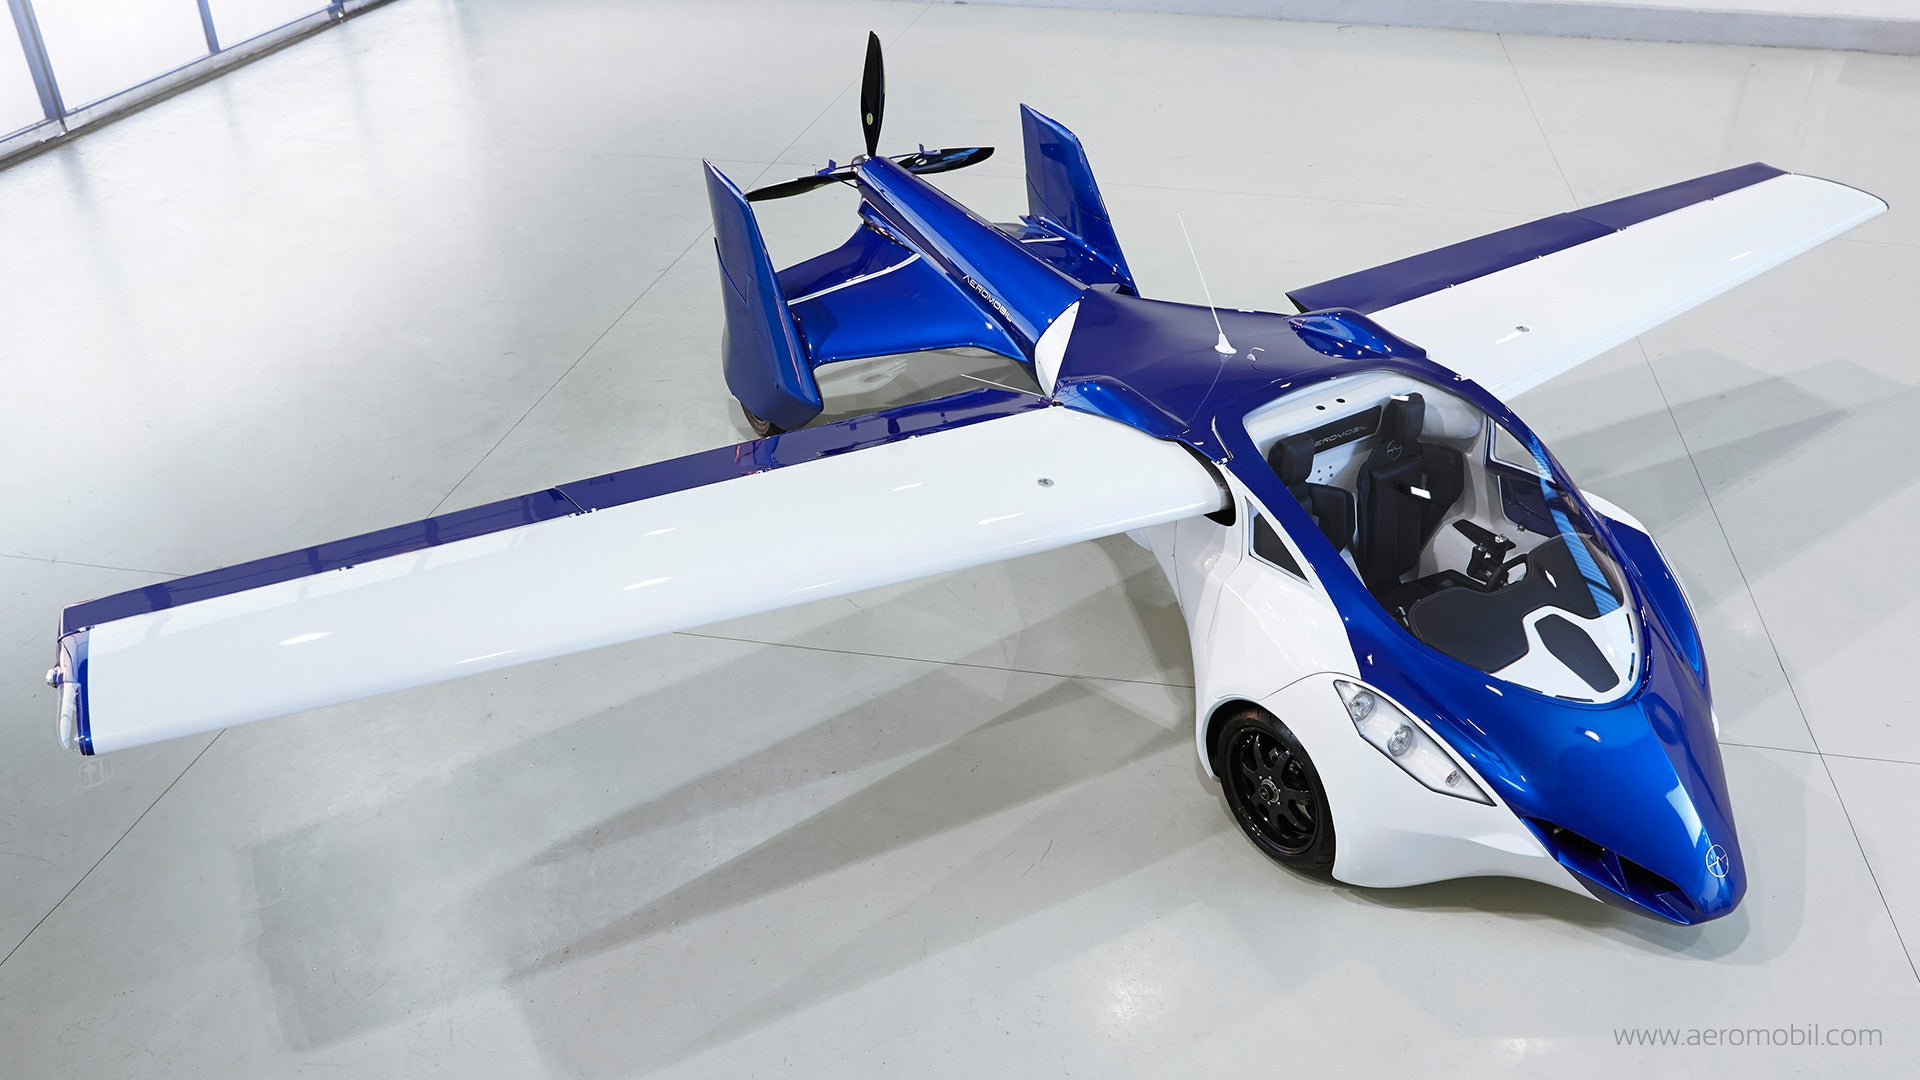 New AeroMobil 3.0 flying car is one really cool transformer